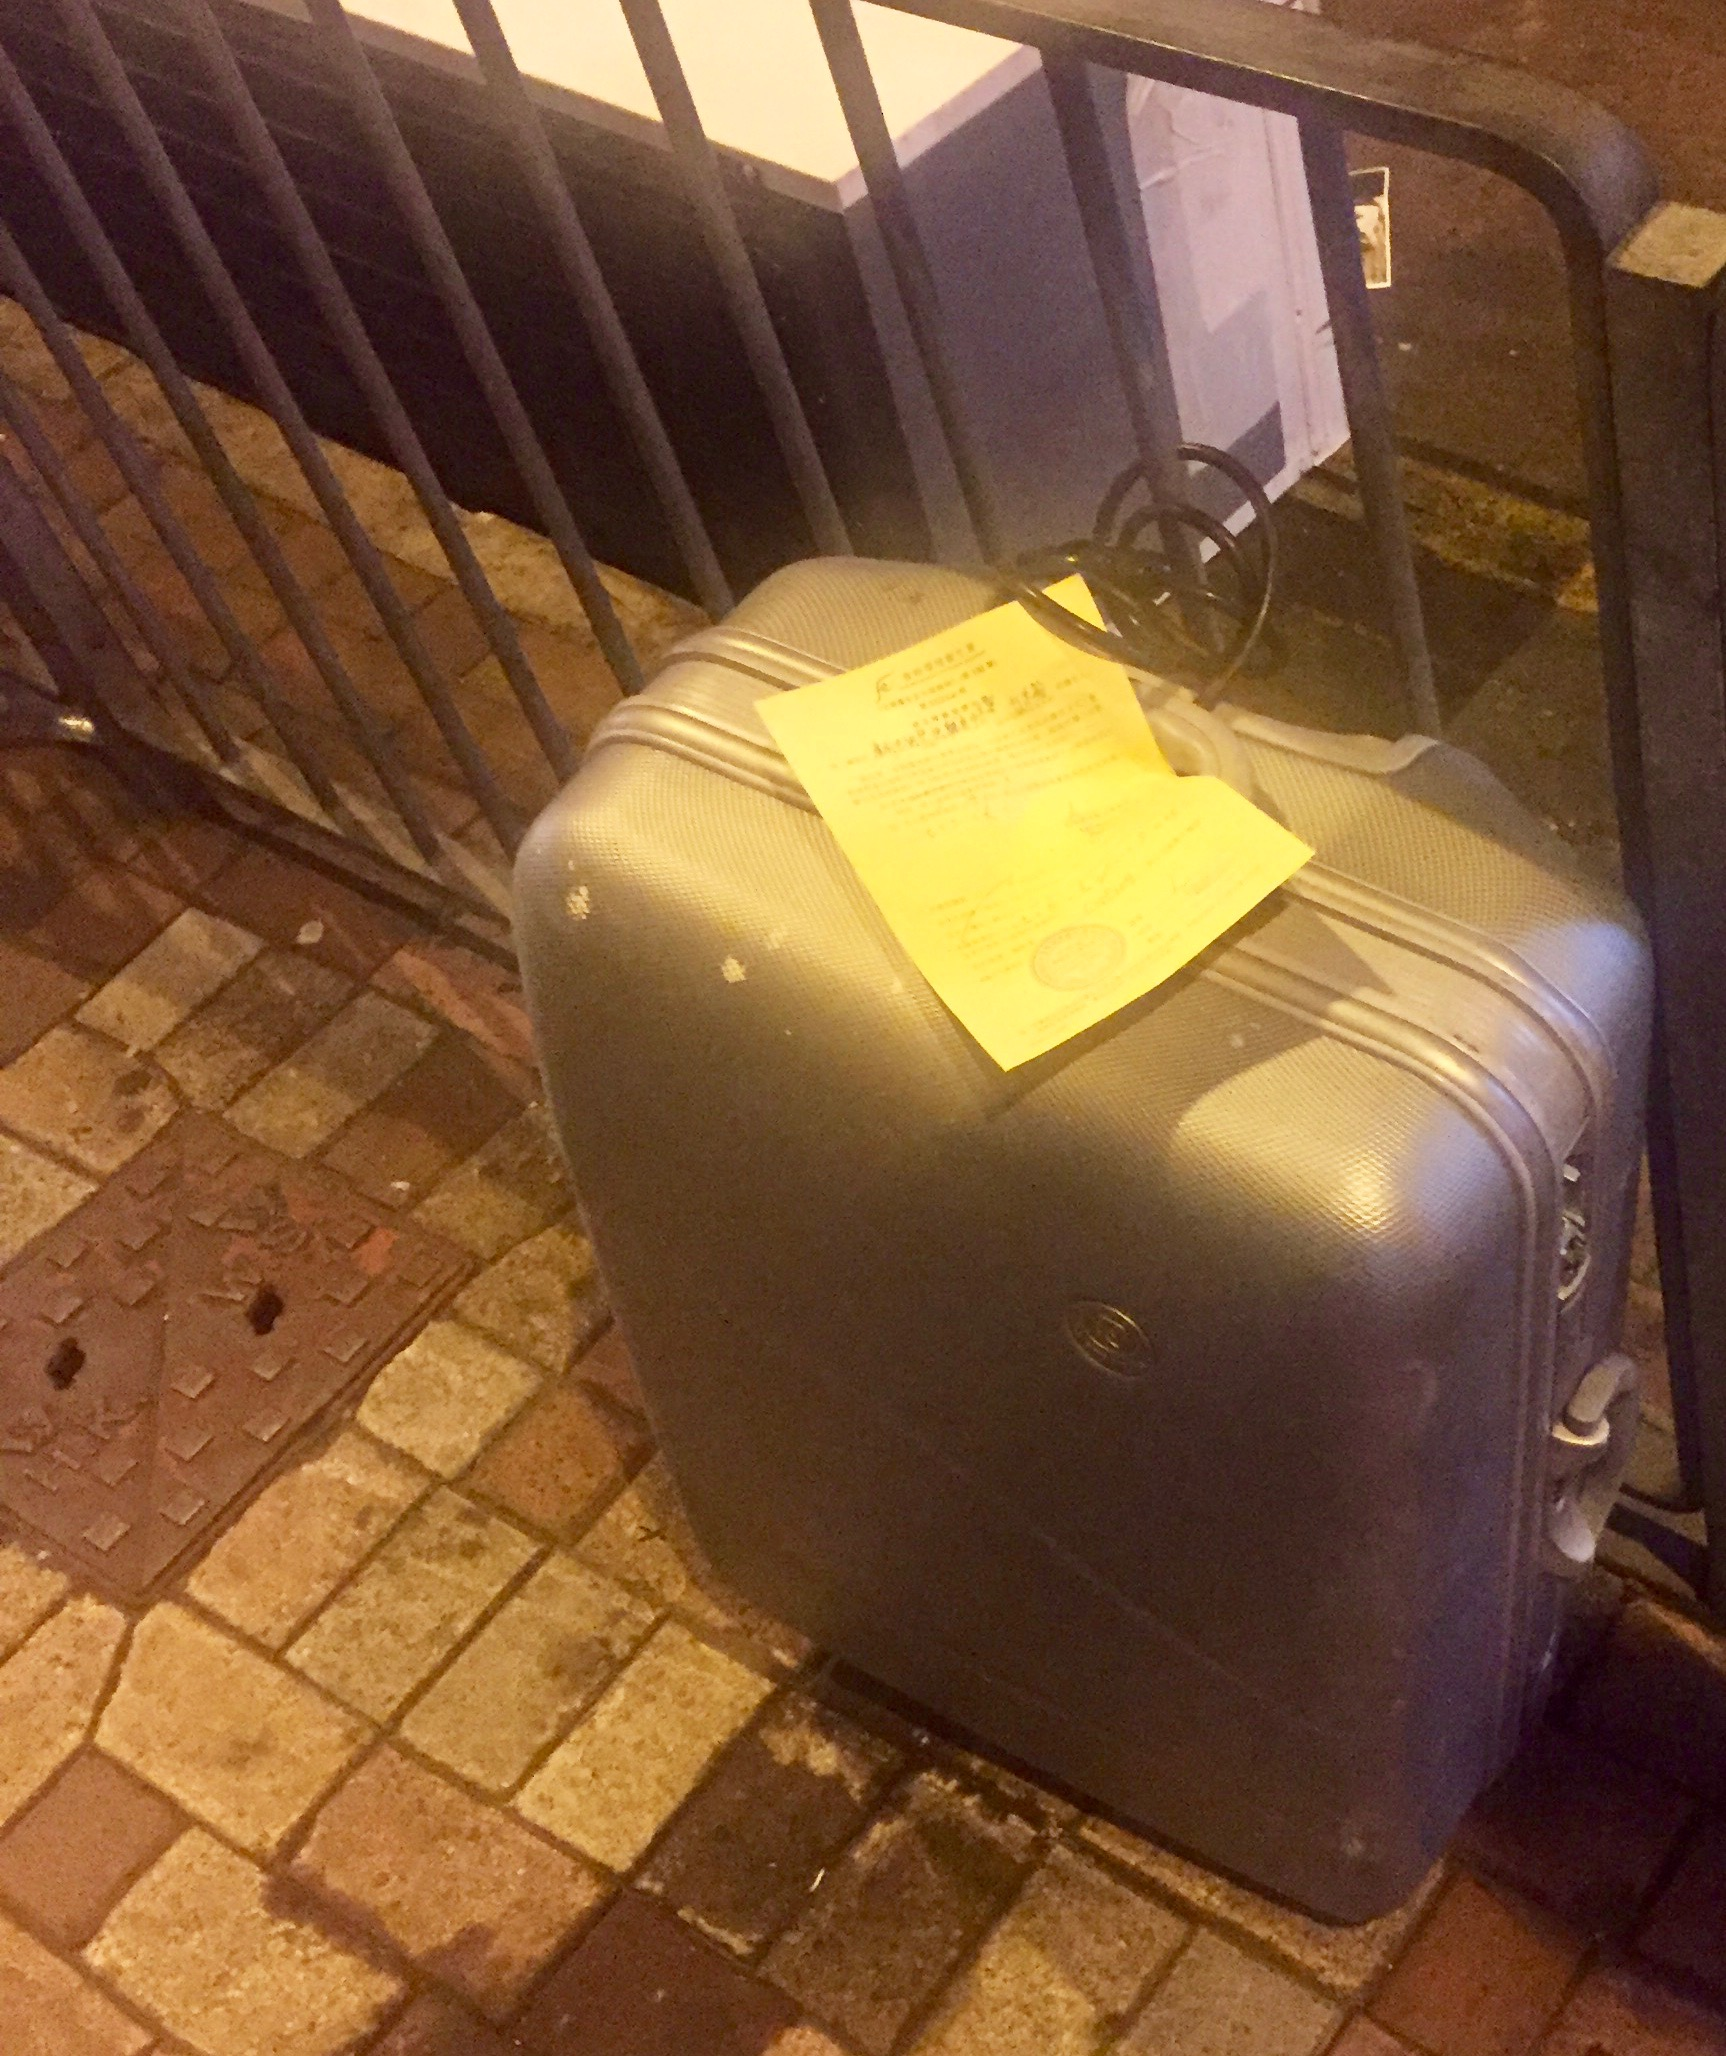 abandoned luggage in Hong Kong